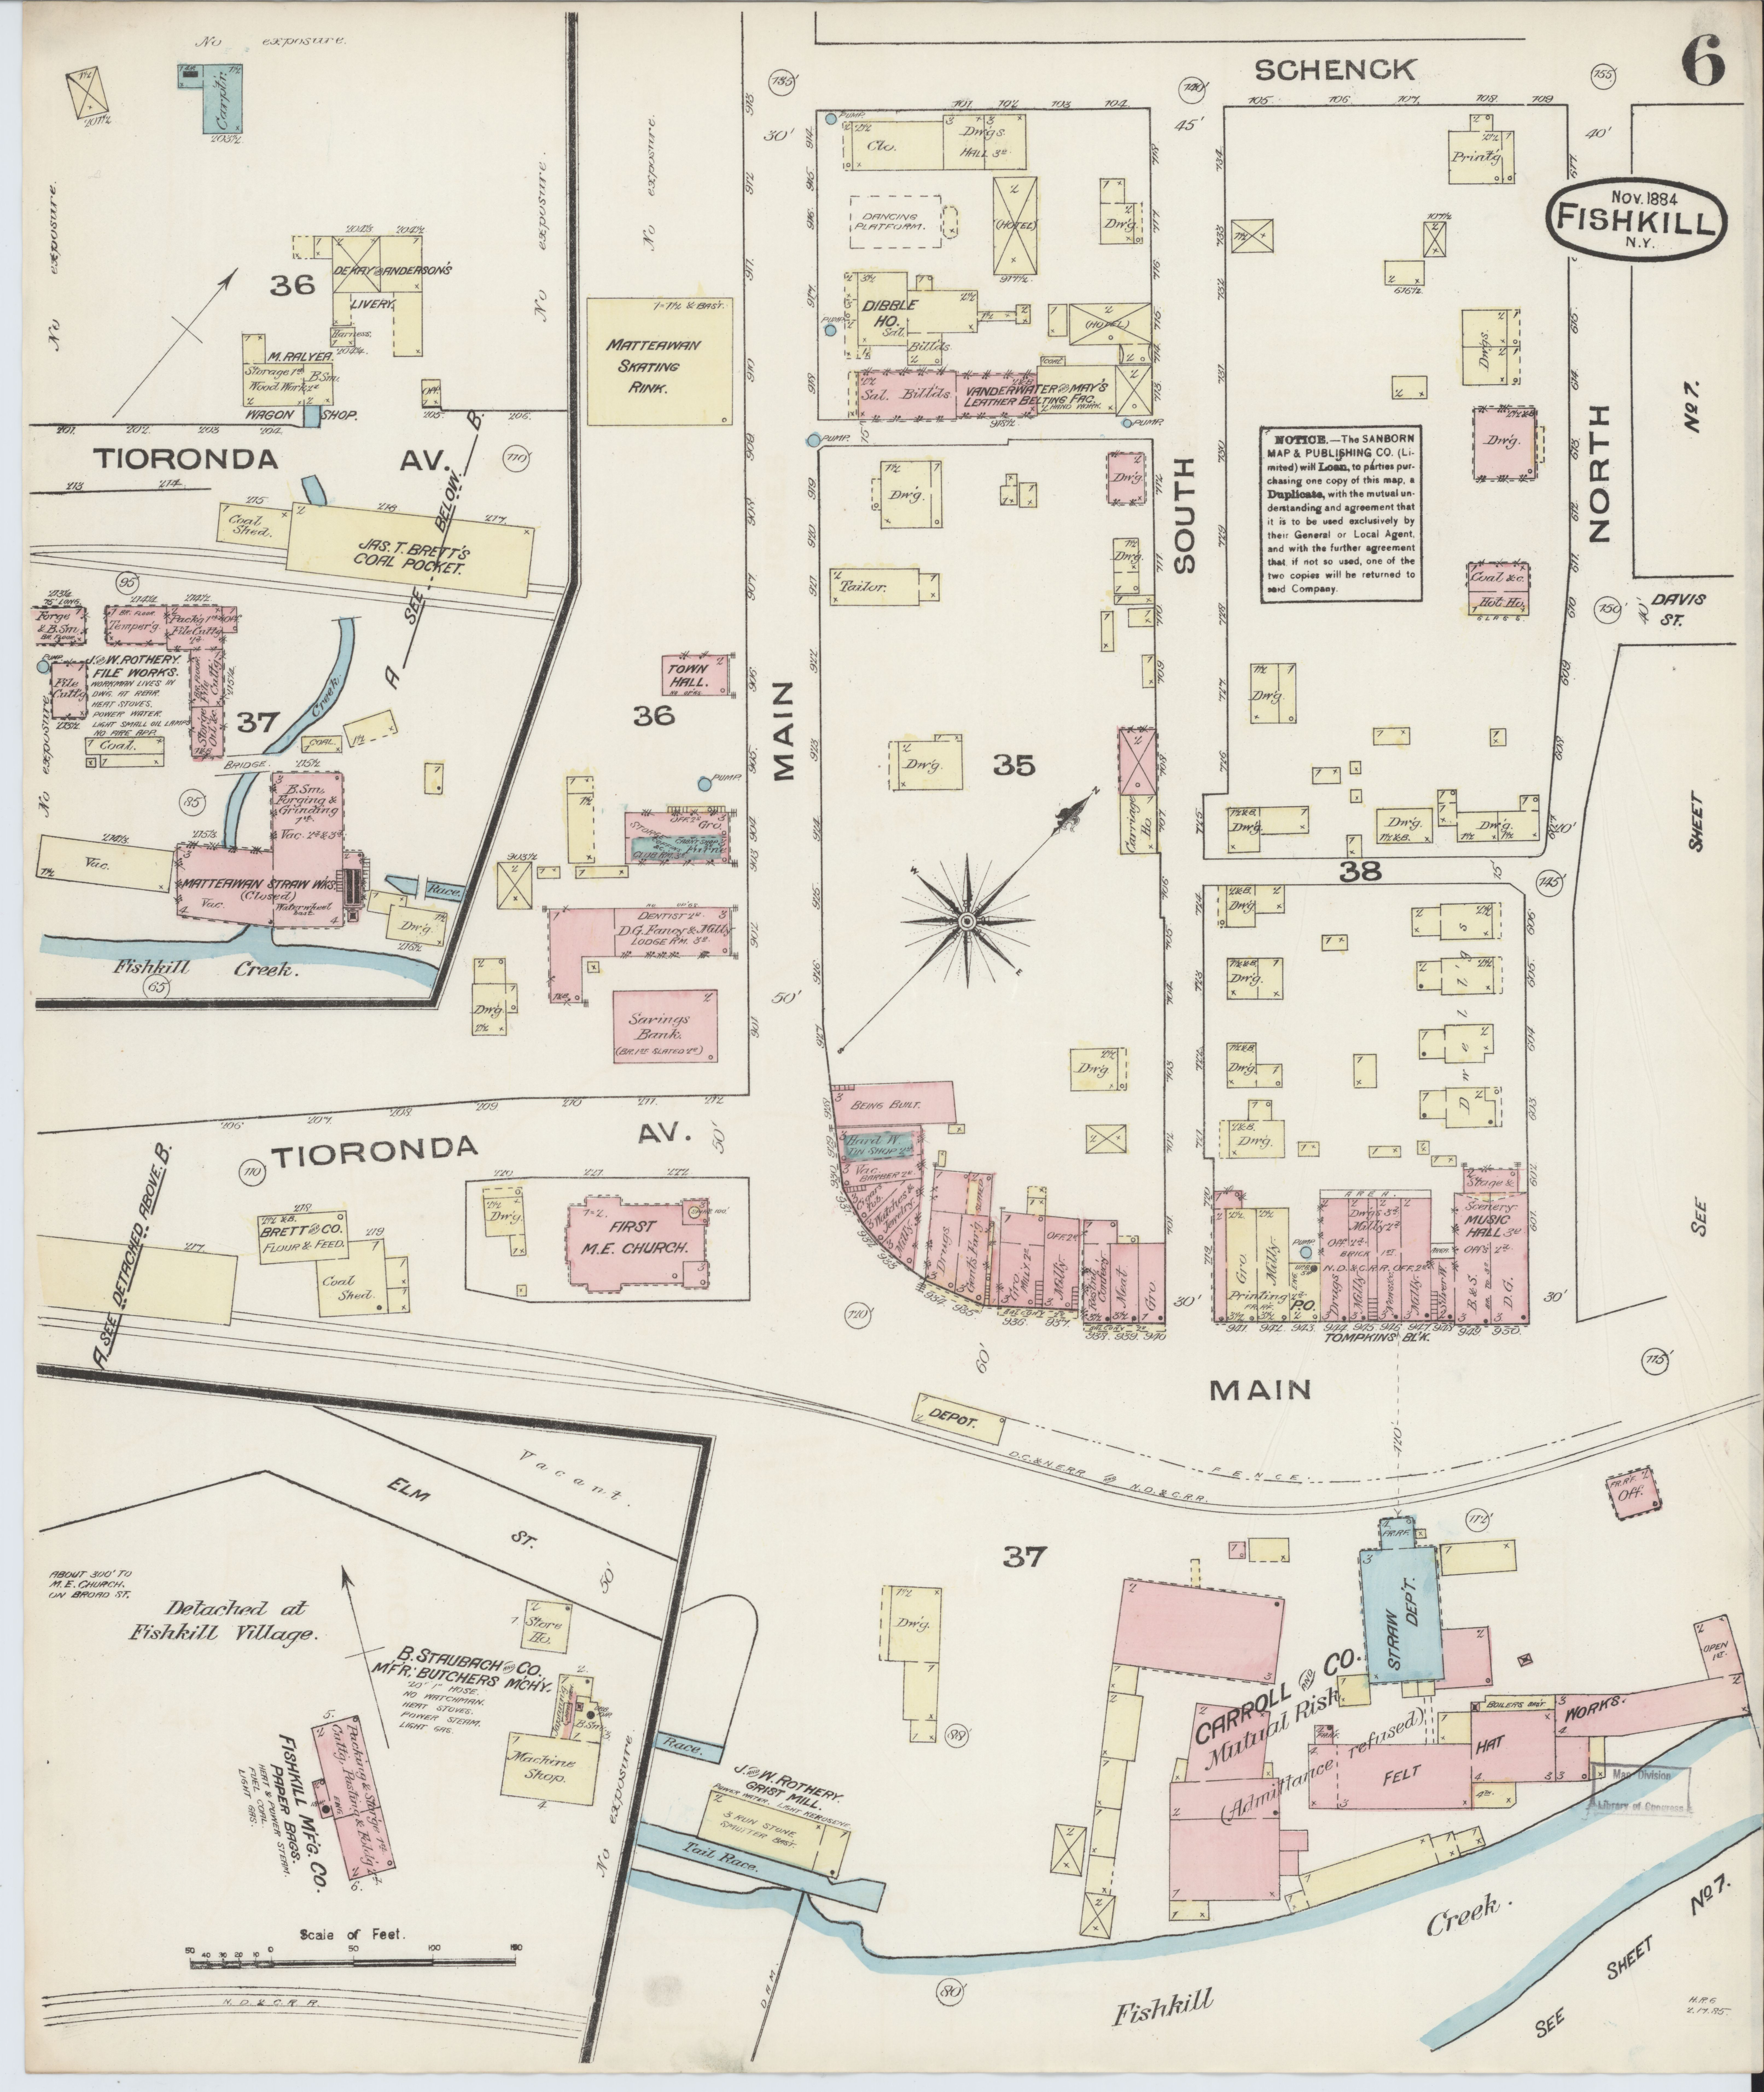 File Sanborn Fire Insurance Map From Fishkill On The Hudson